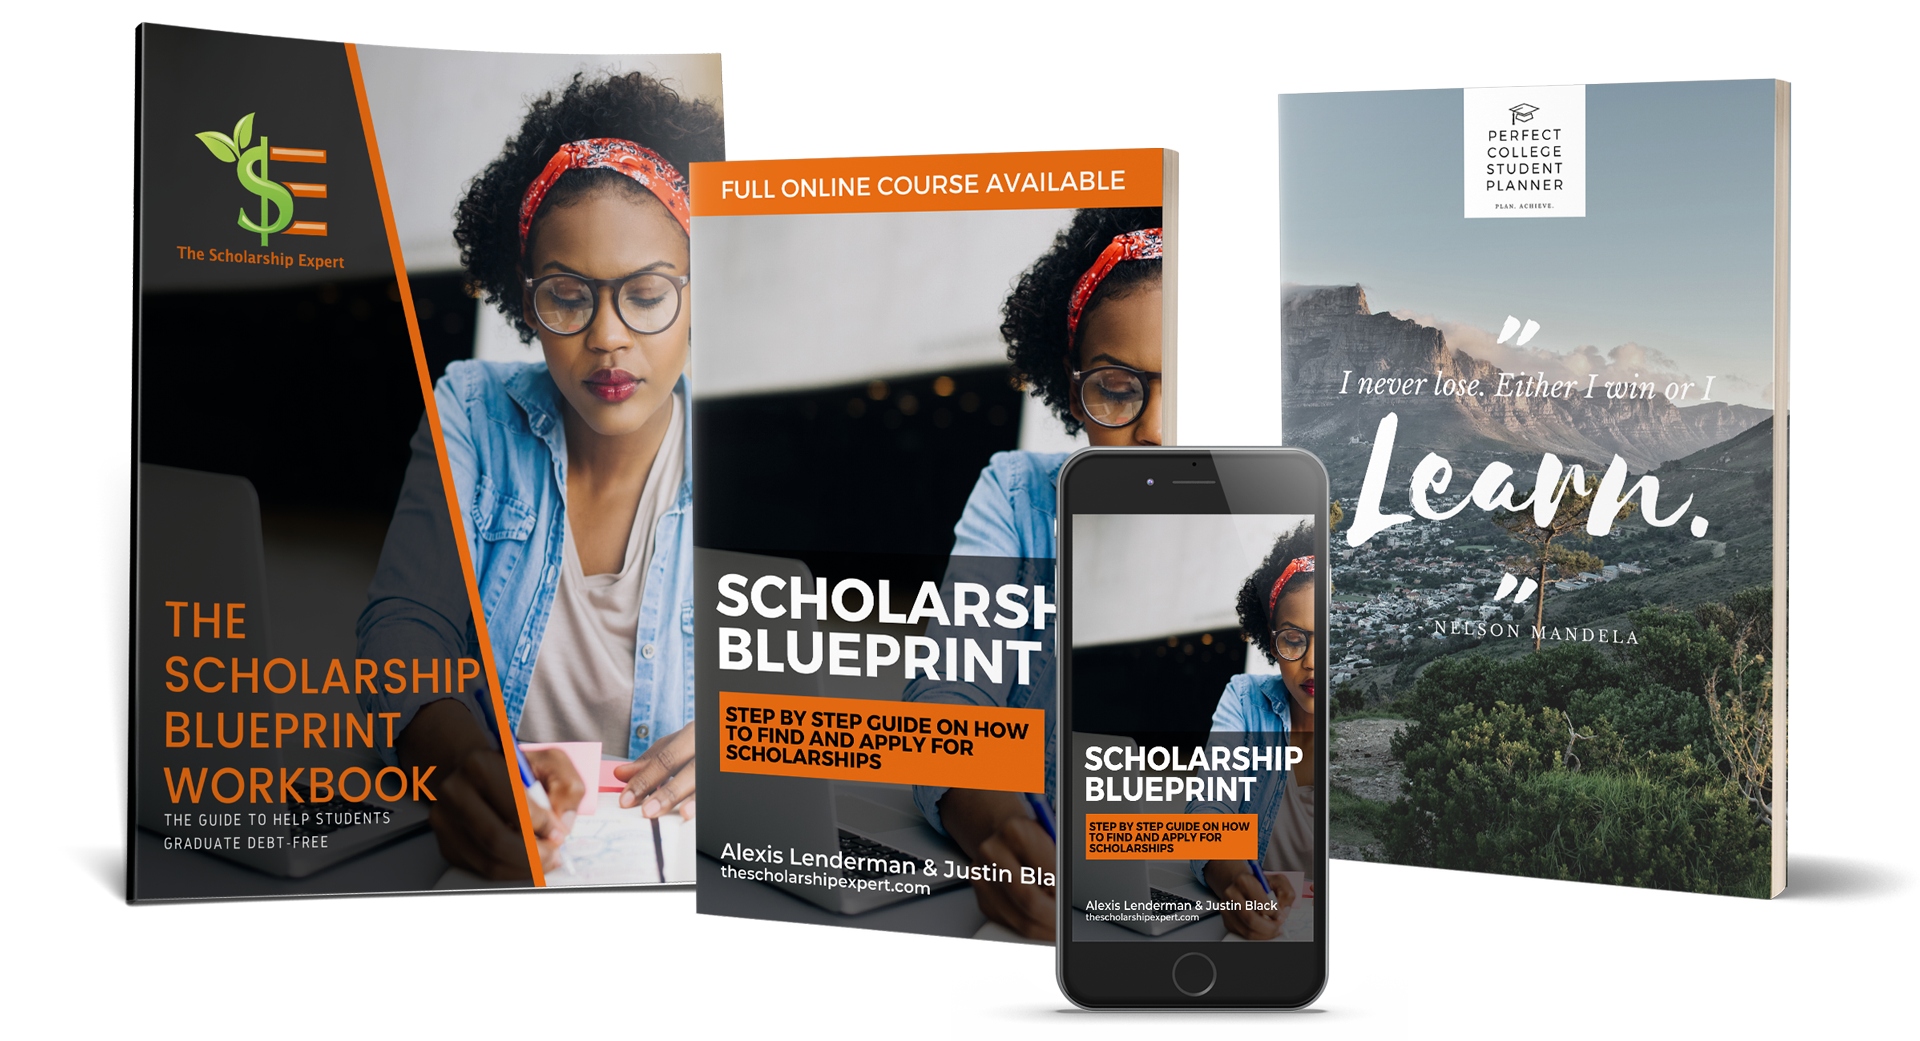 The Scholarship Blueprint Course, Print Book, & The Perfect College Student Planner